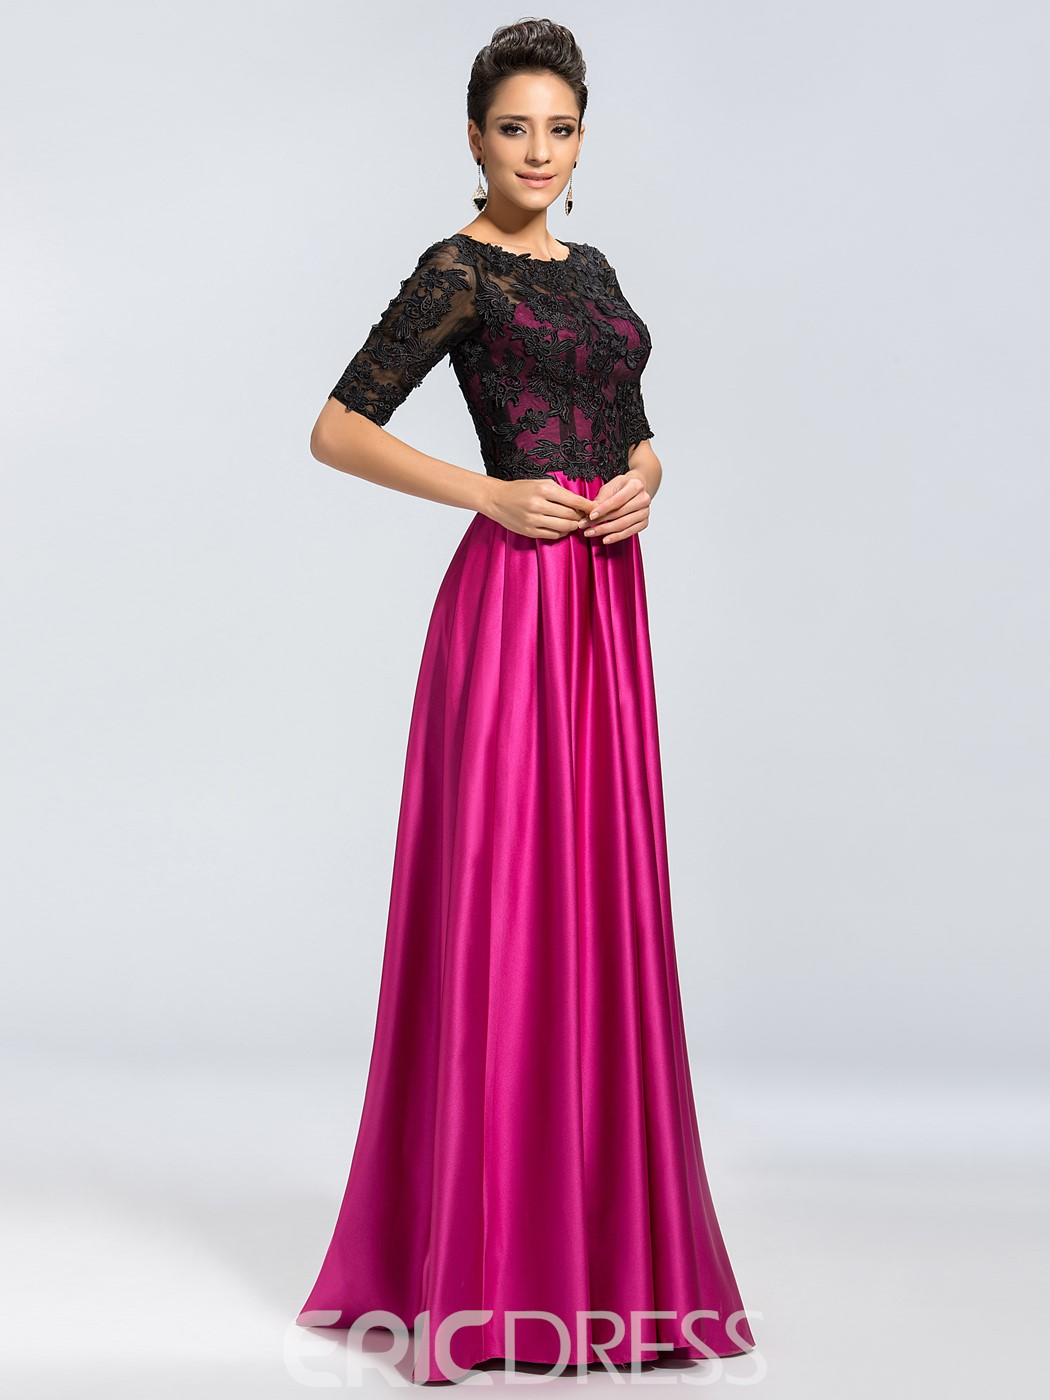 Charming Half Sleeves Appliques Scoop Neck Mother of the Bride Dress